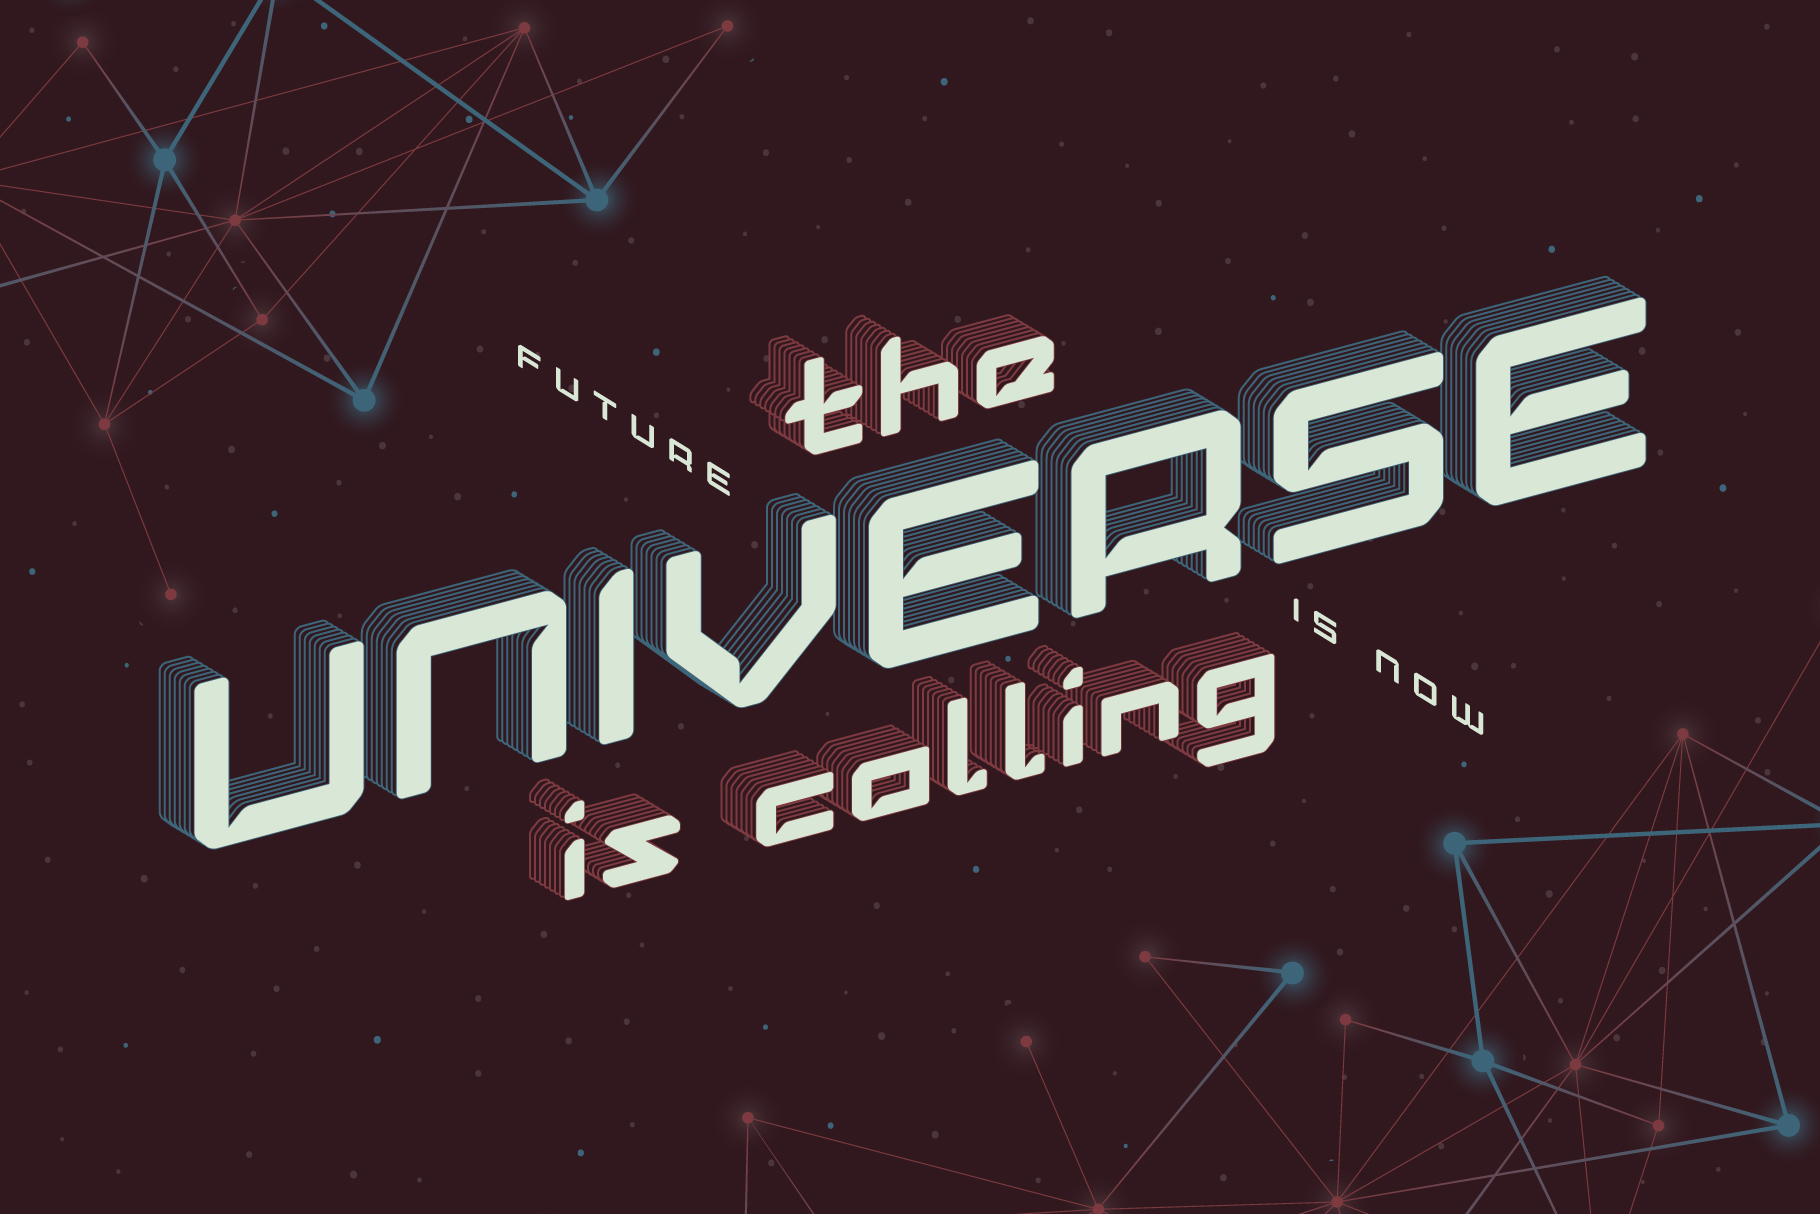 Lost in space. Futuristic typeface example image 2